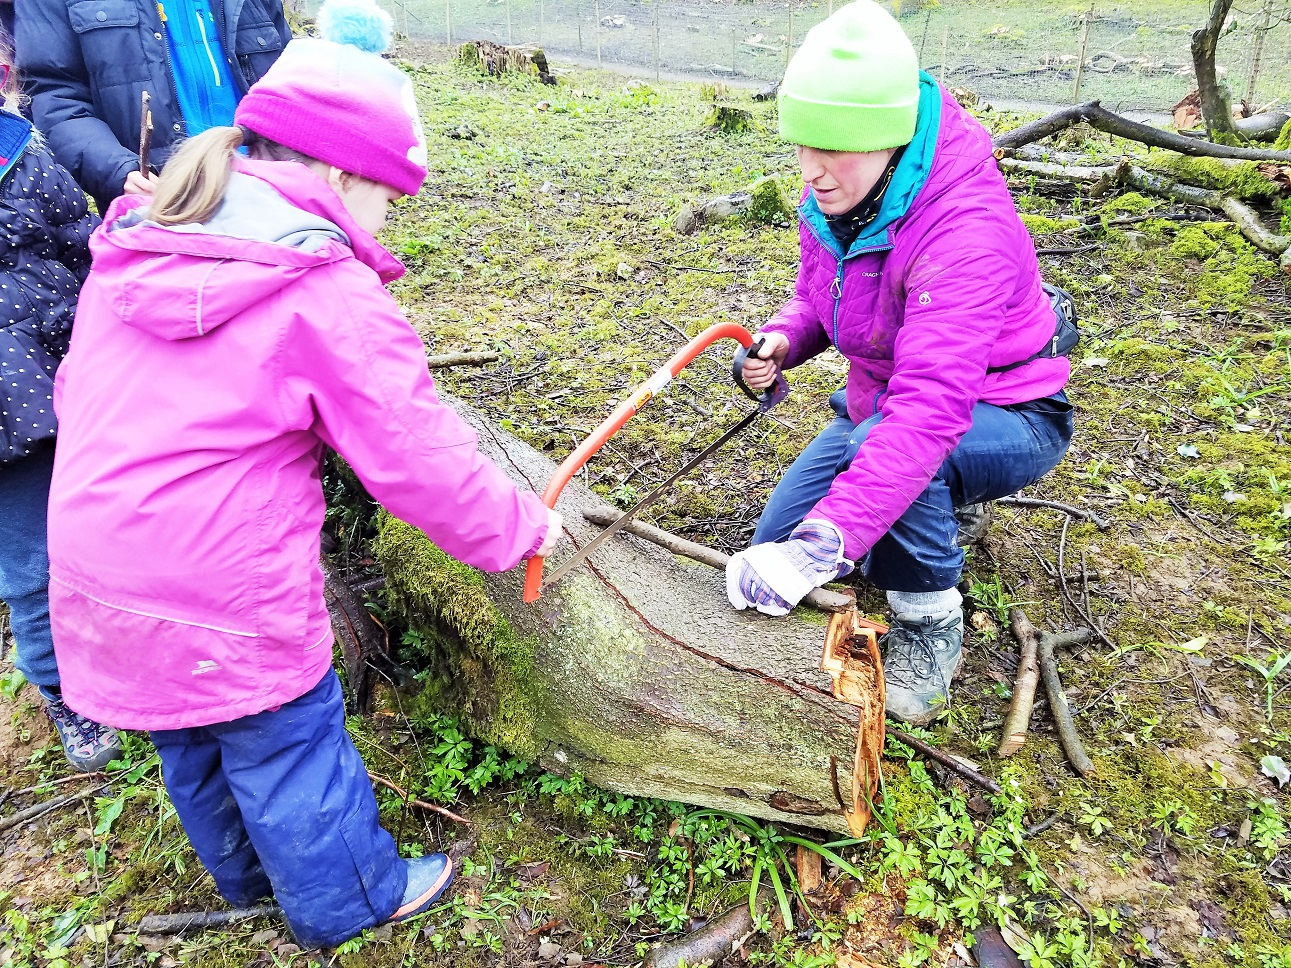 Child using bow saw to saw wood and make a kazoo - Forest School class in Yorkshire Dales